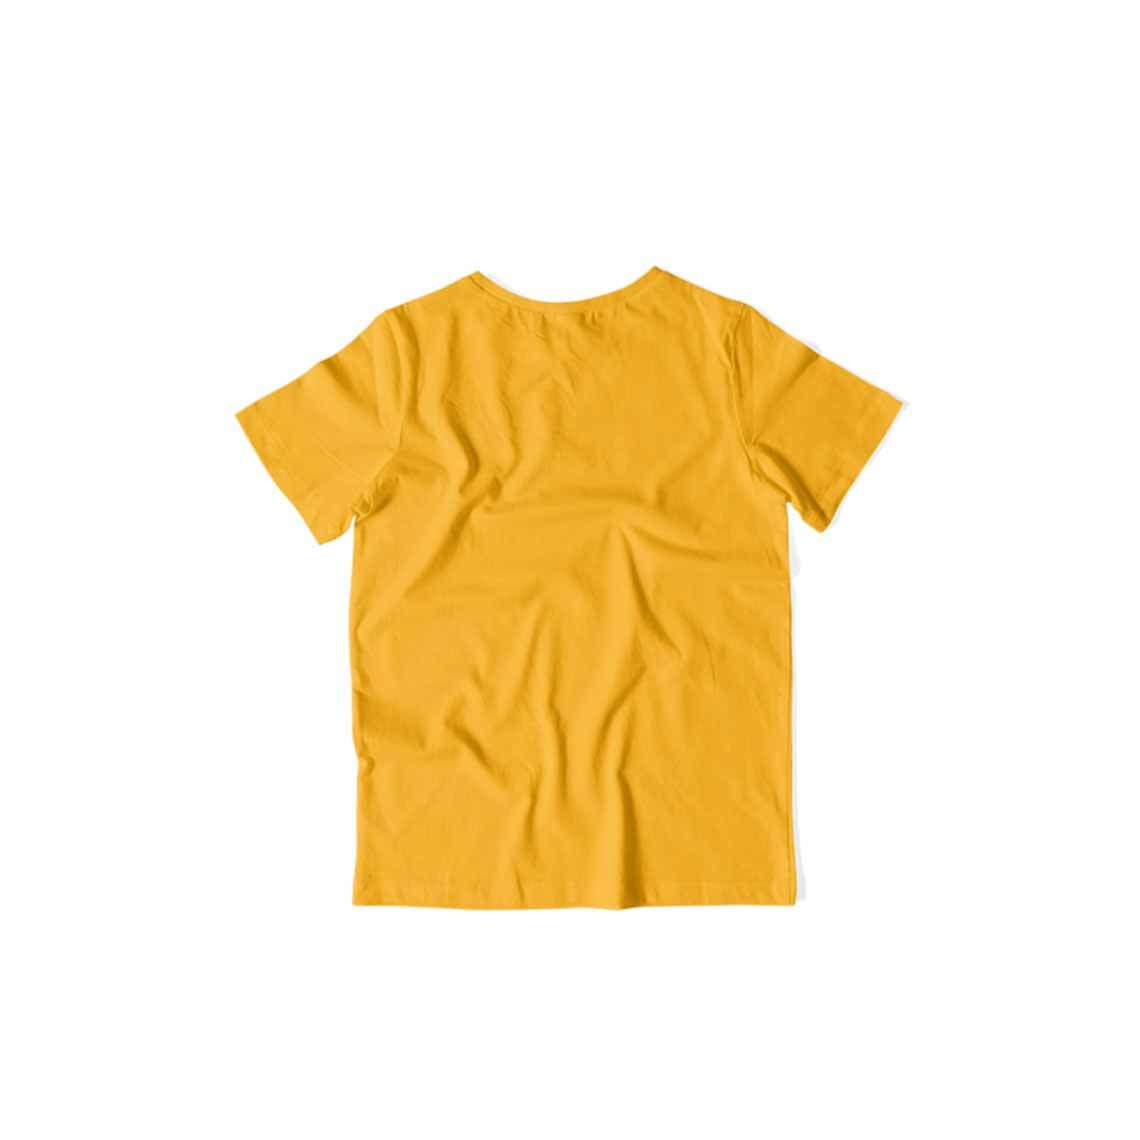 Kids's Basics - Golden Yellow Half Sleeves Round Neck T-shirt